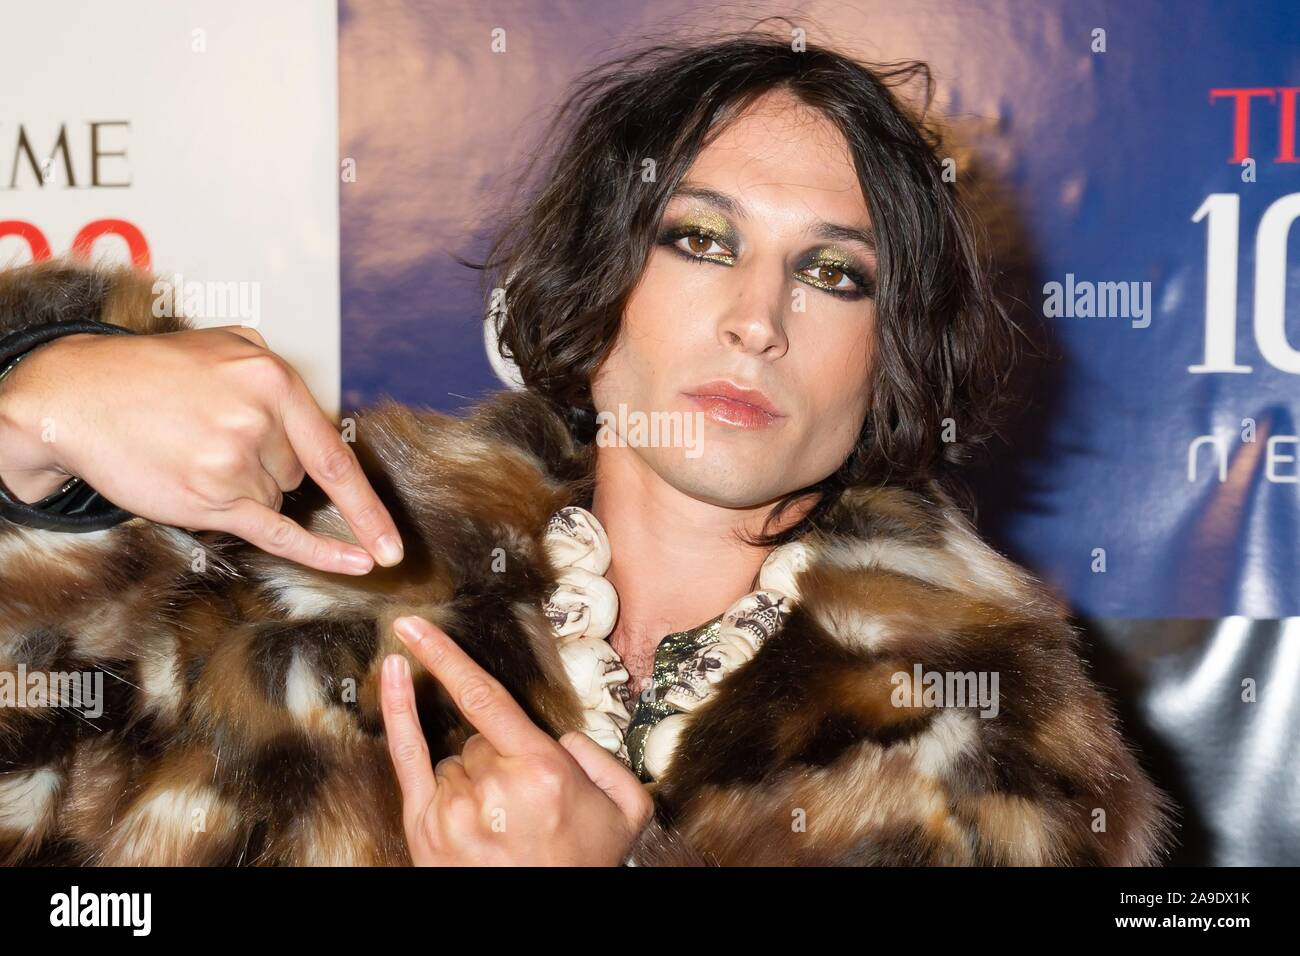 New York, NY, USA. 14 Nov, 2019. Ezra Miller bei der Ankunft für den ersten jährlichen ZEIT 100 Nächste Liste, Pier 17, New York, NY 14. November 2019. Credit: Jason Smith/Everett Collection/Alamy leben Nachrichten Stockfoto